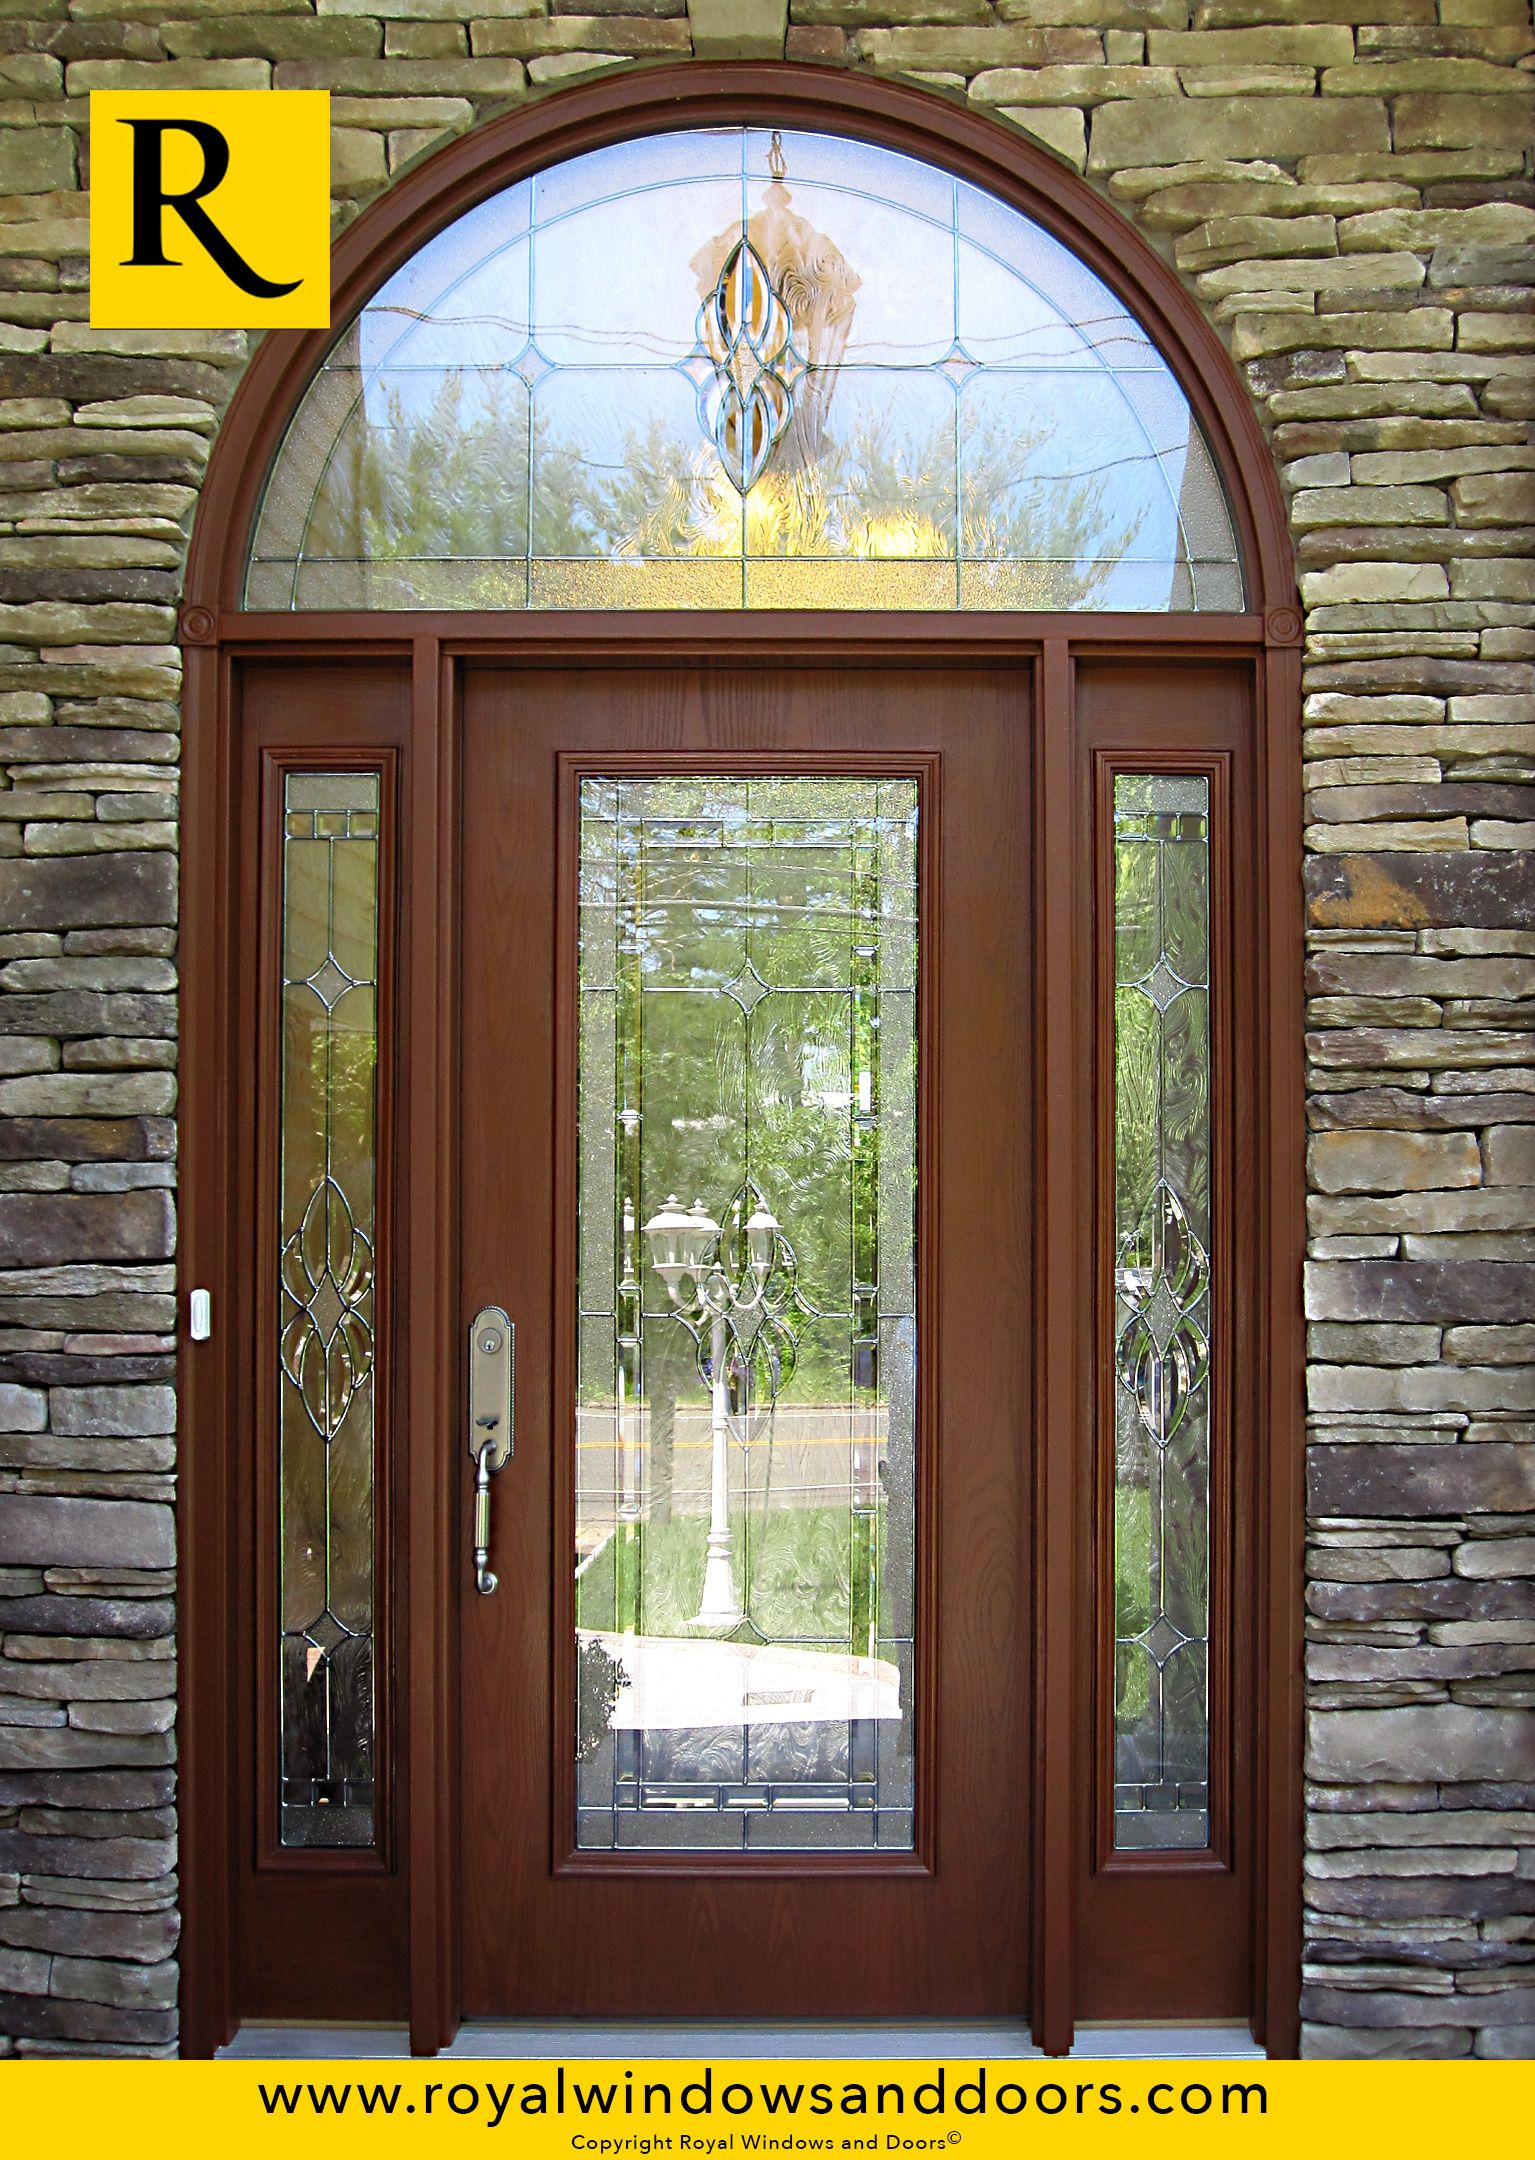 Single Entry Doors With Glass single entry door , wood finish, two side lites, transom, designer